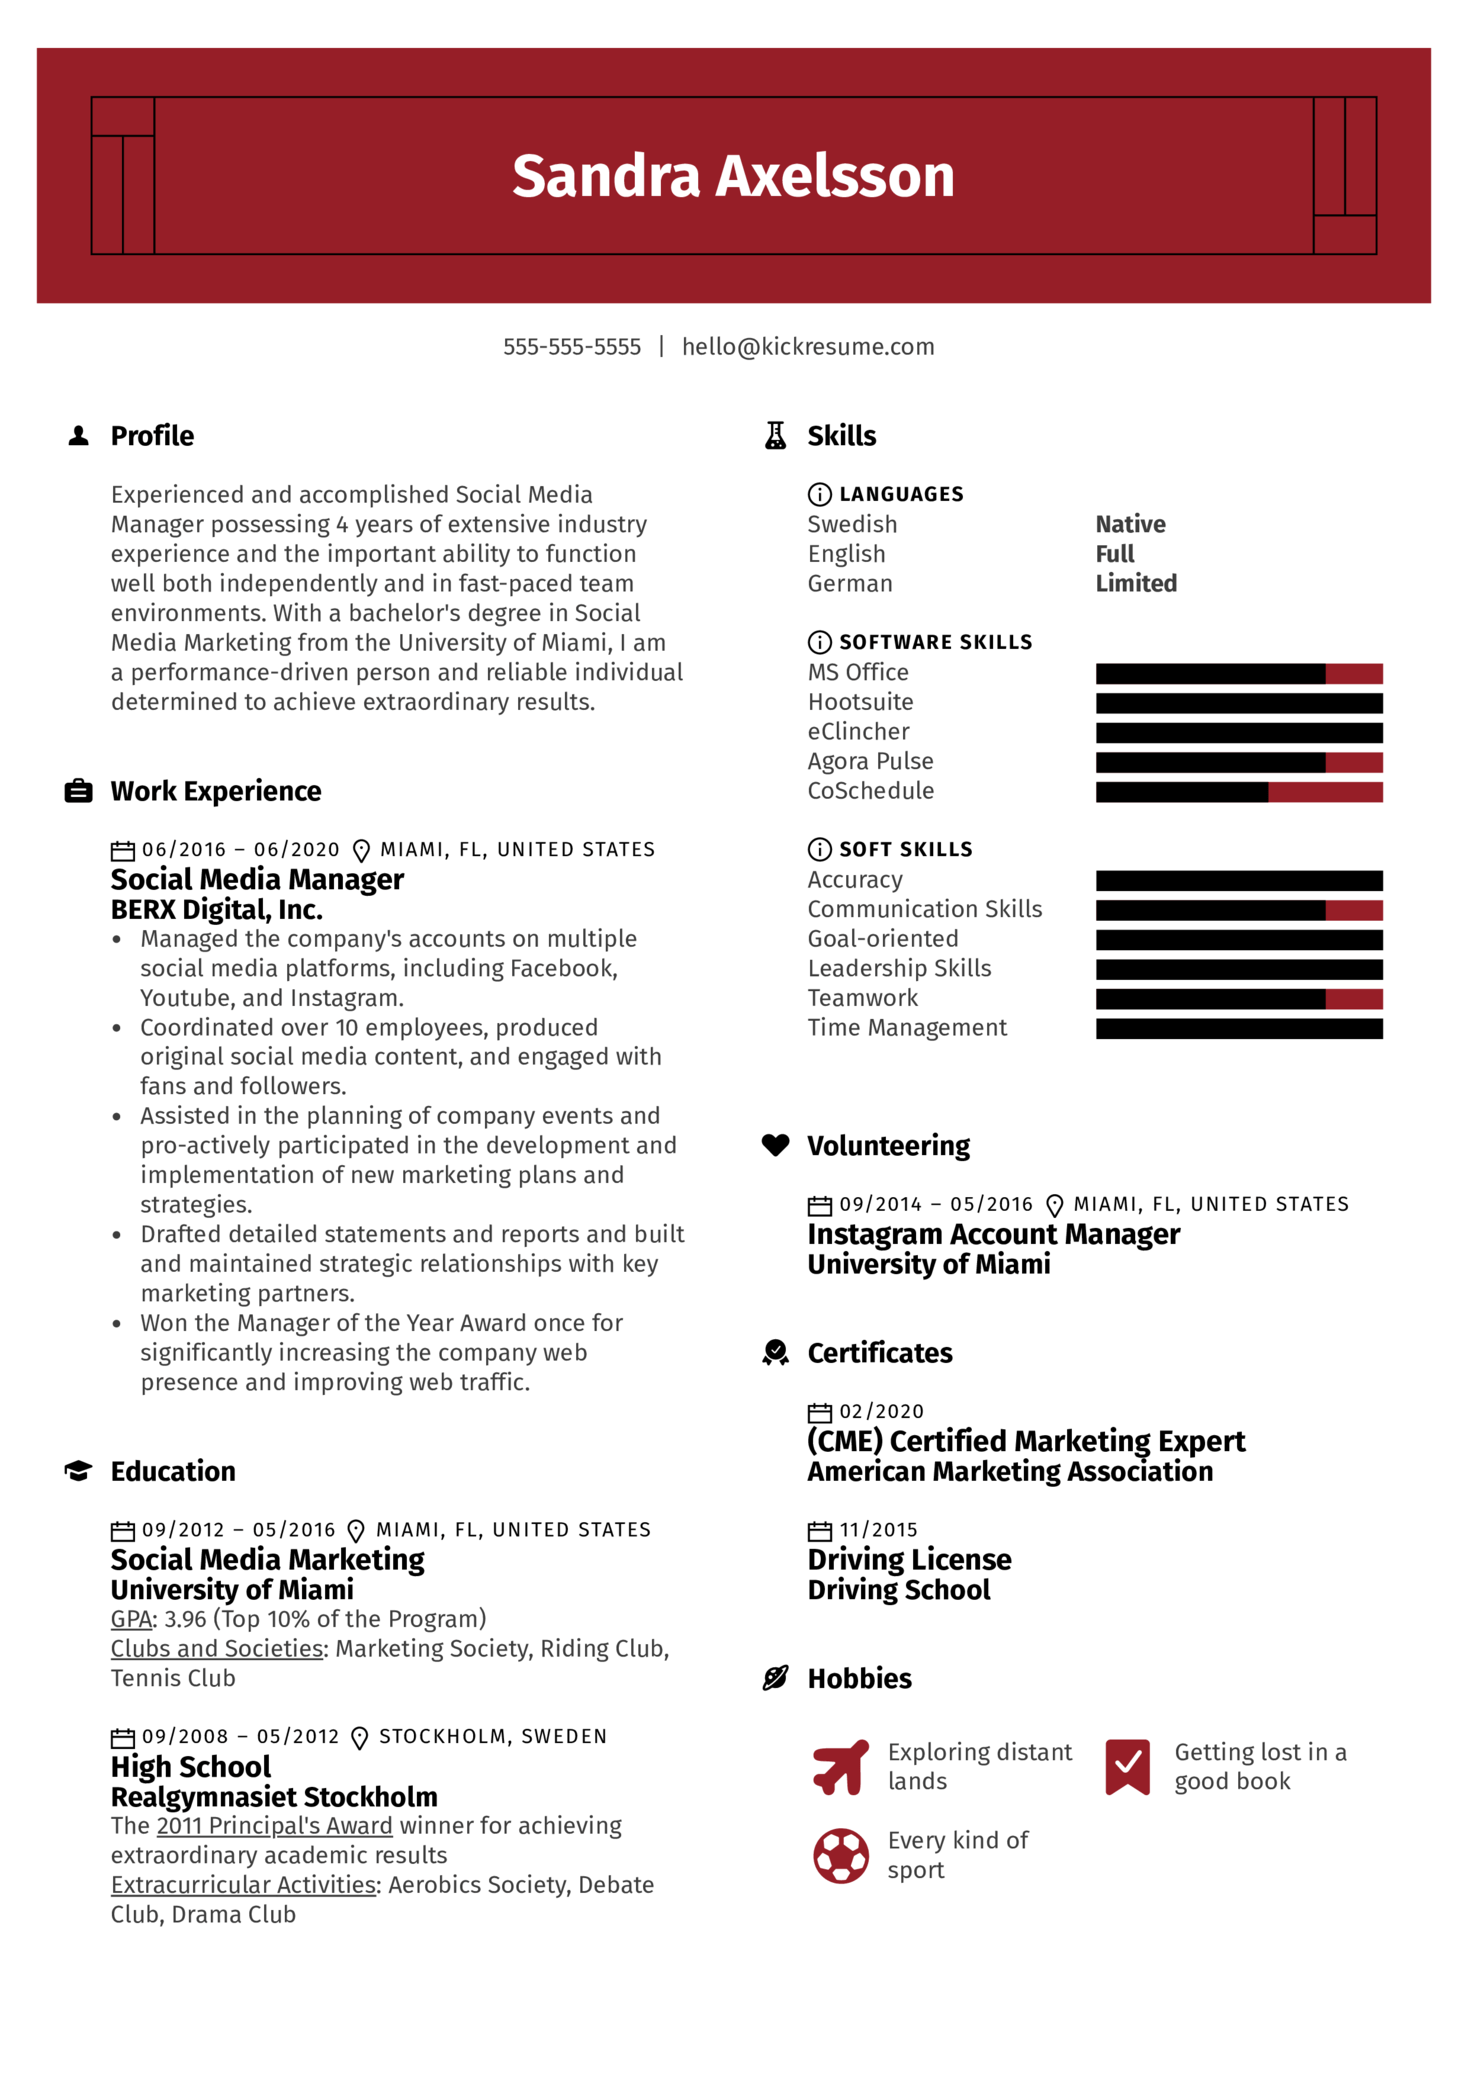 Professional Social Media Manager Resume Sample